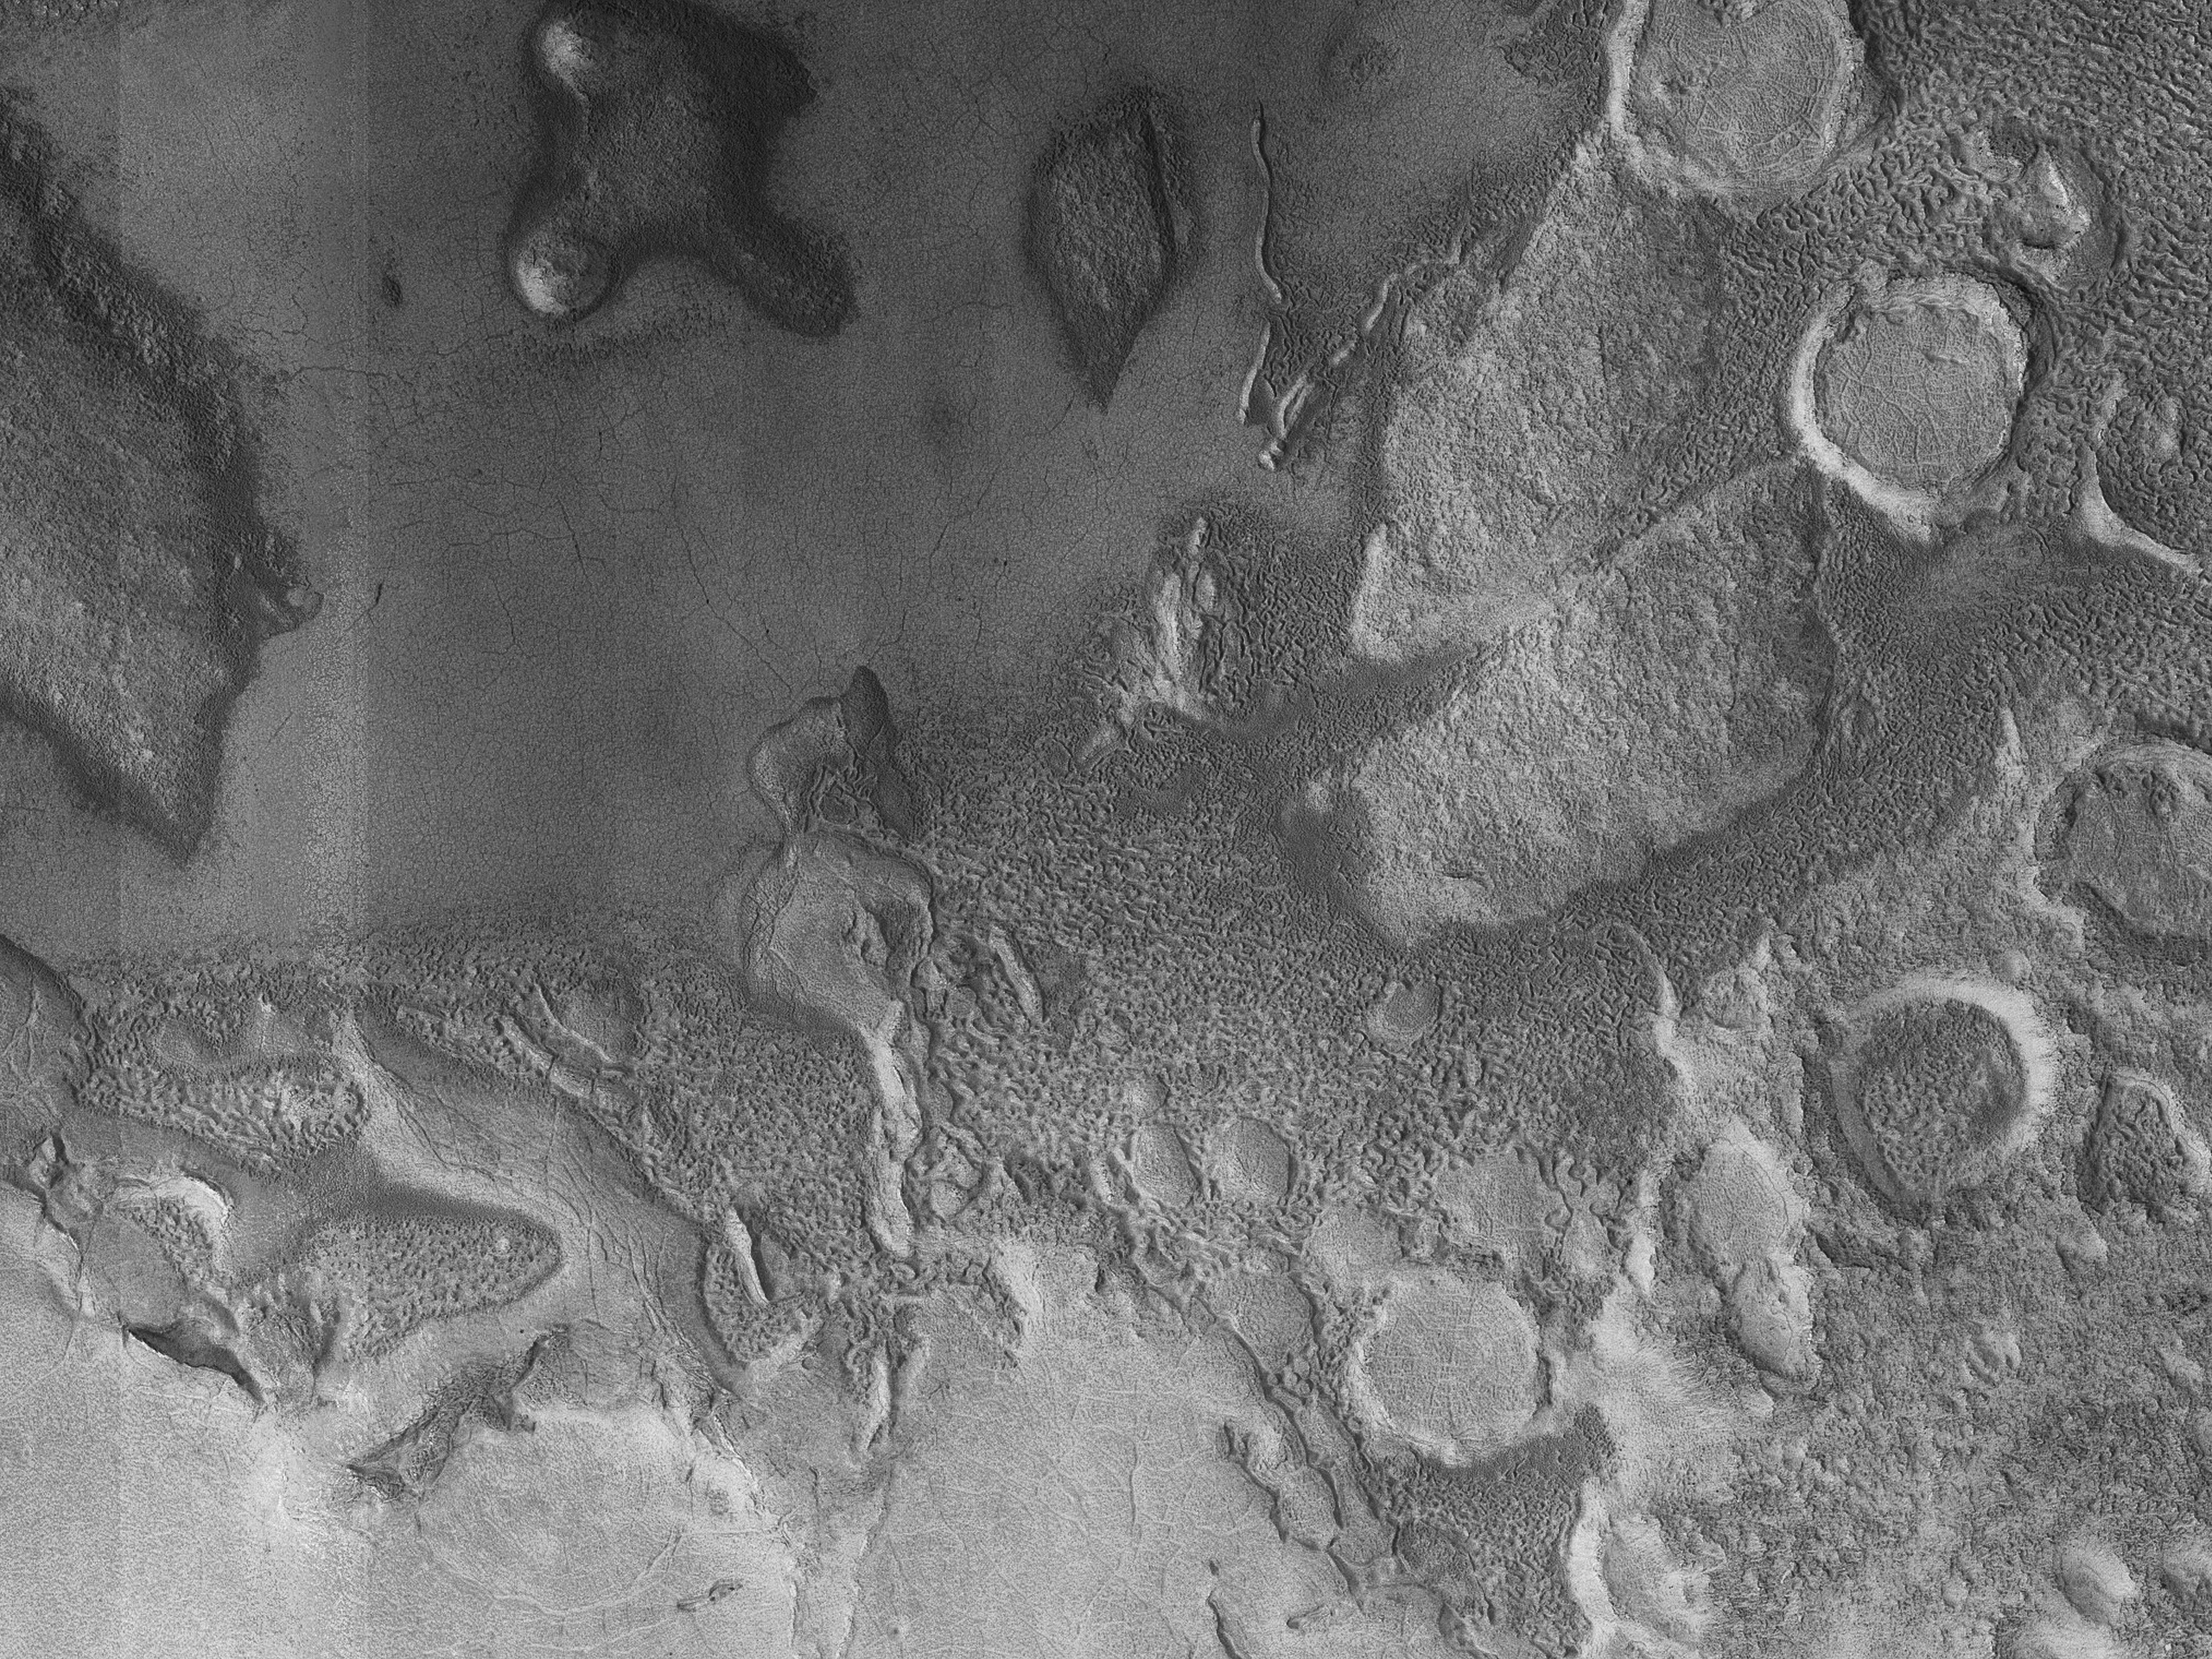 Erosion of Surfaces North of Moreux Crater